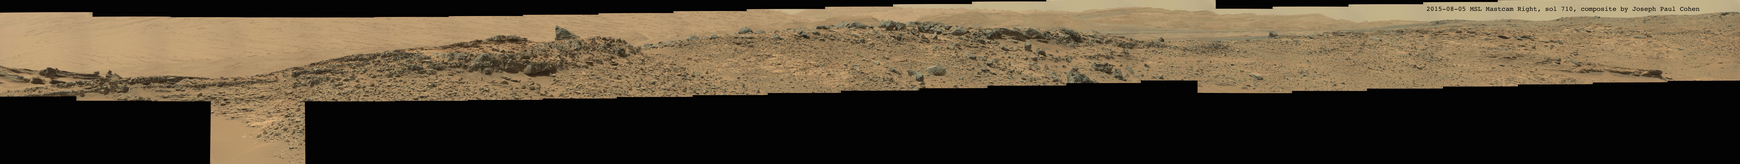 2015-08-05-MastCamRight-sol710